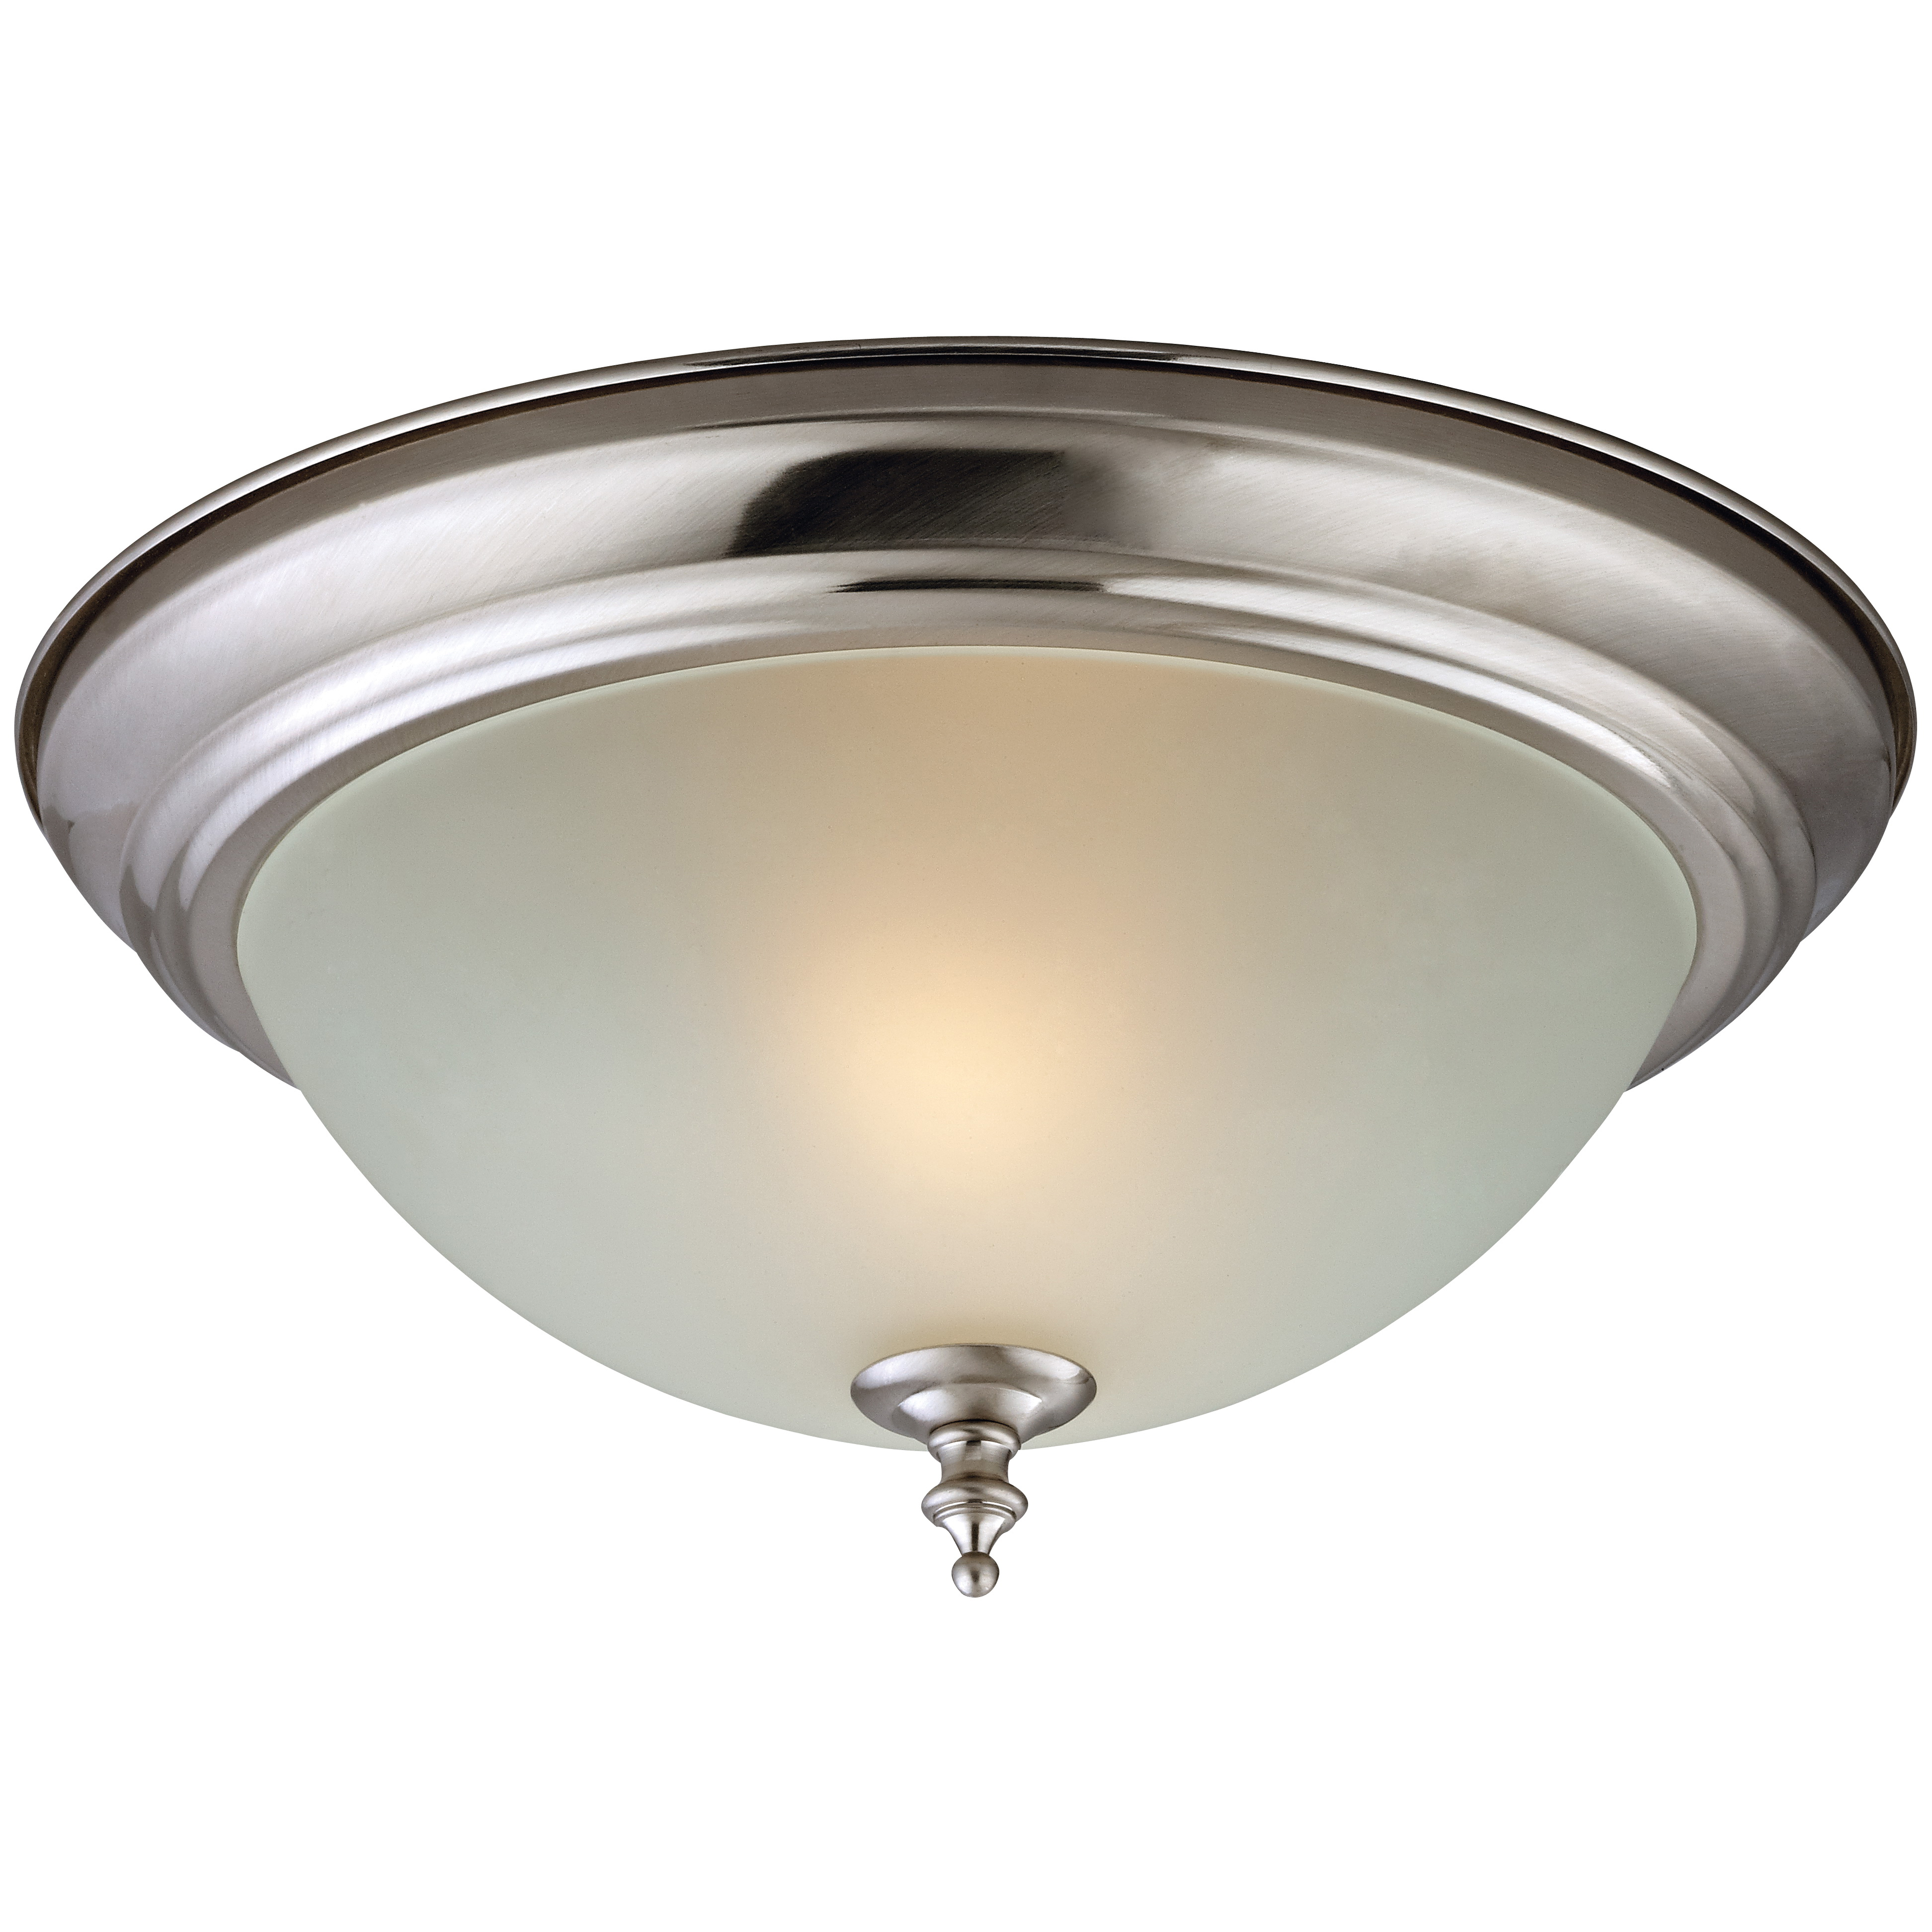 Picture of Boston Harbor F51WH02-1005-BN Ceiling Light Fixture, 2-Lamp, CFL Lamp, Brushed Nickel Fixture